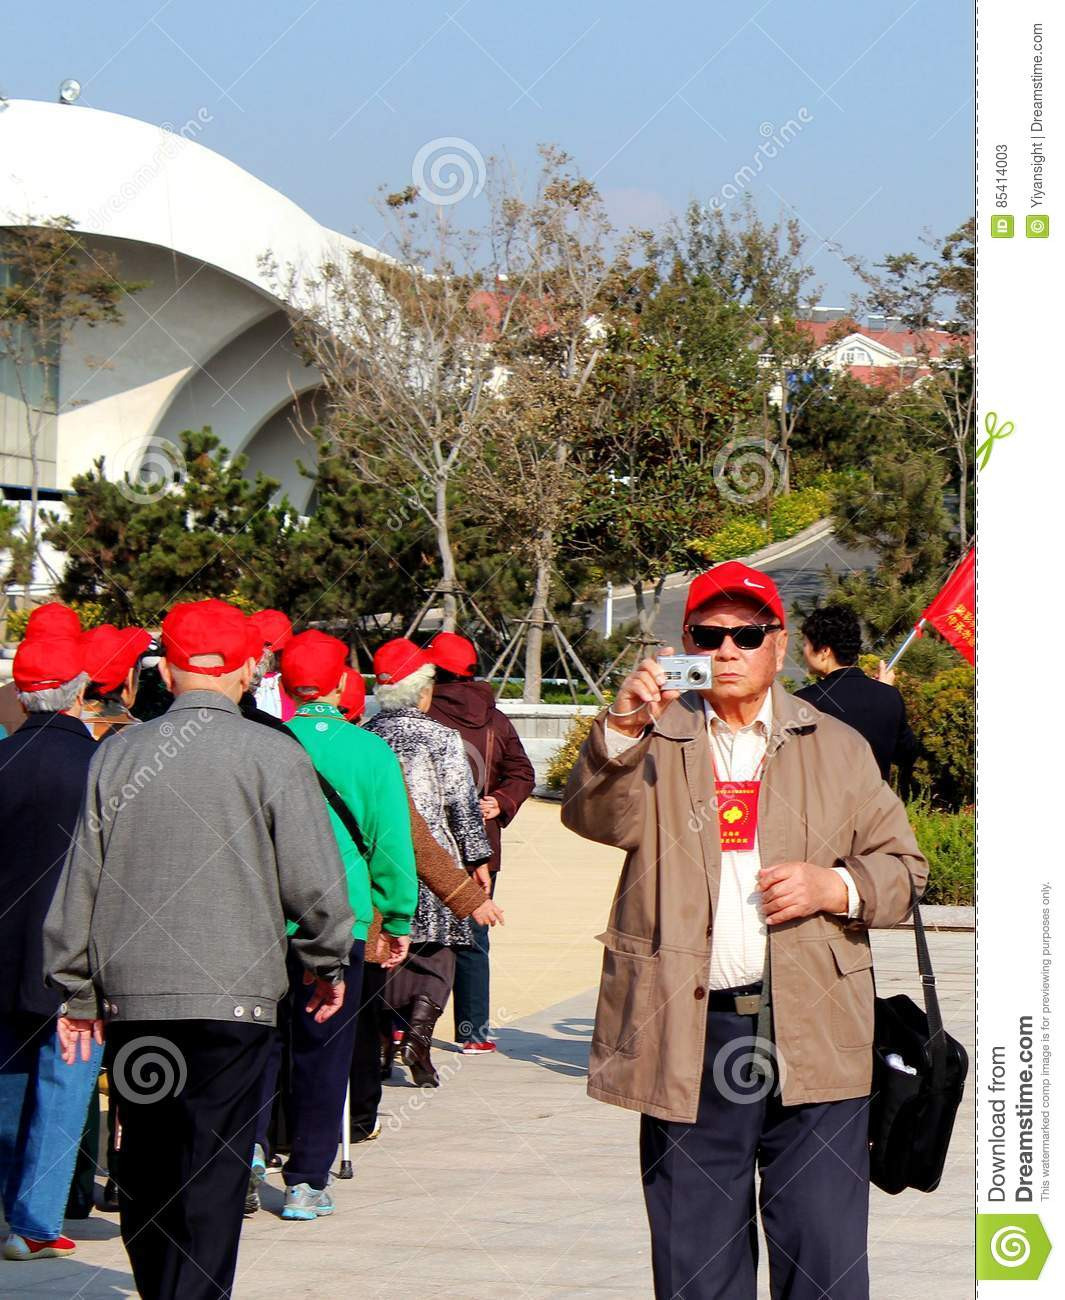 Download The Old Man Out Of The Queue To Take Pictures Editorial Stock Photo - Image of nursing, queue: 85414003